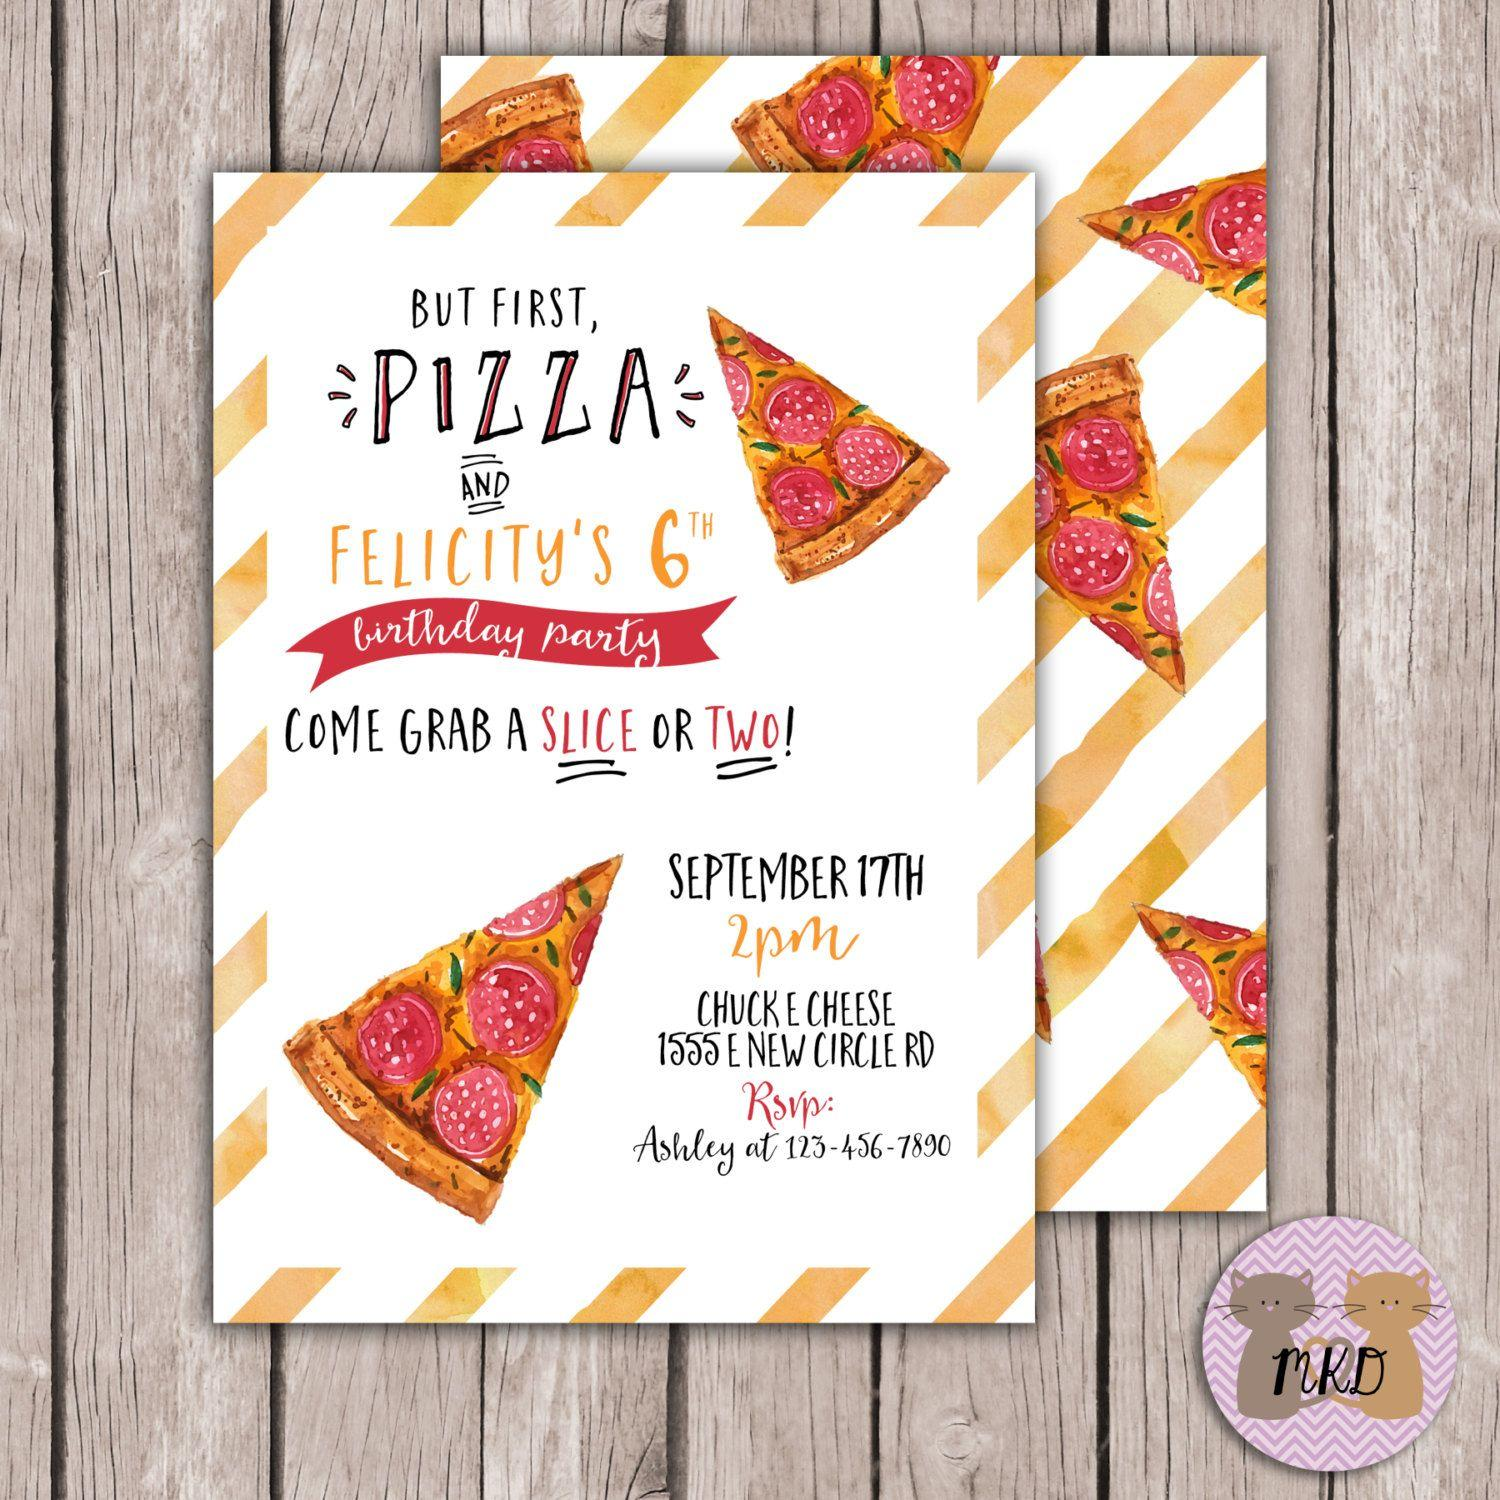 Pizza Party Invitation Cards